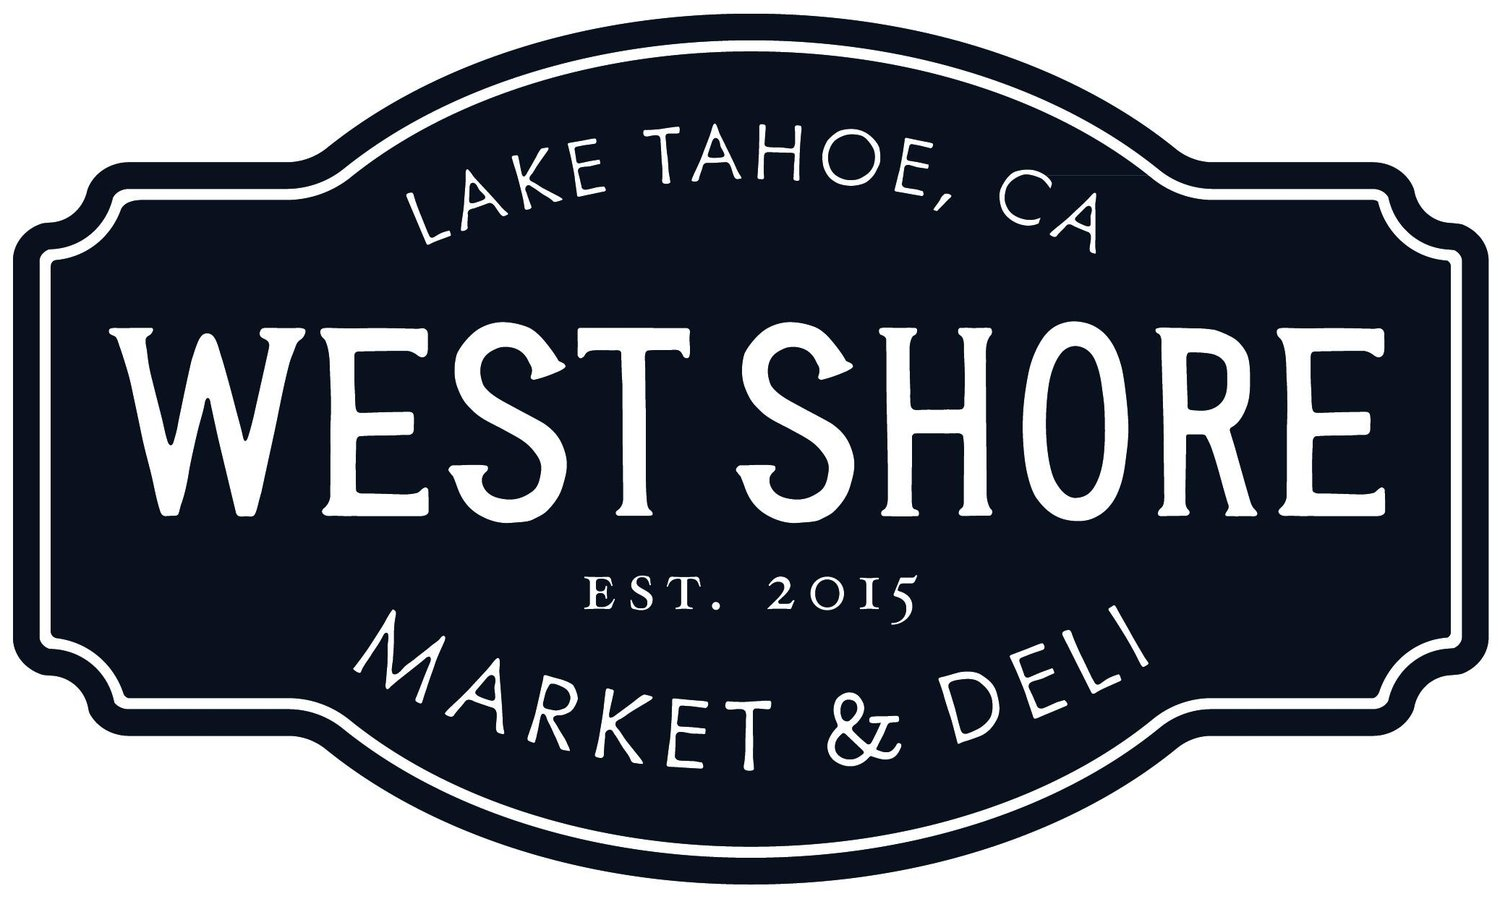 West Shore Market